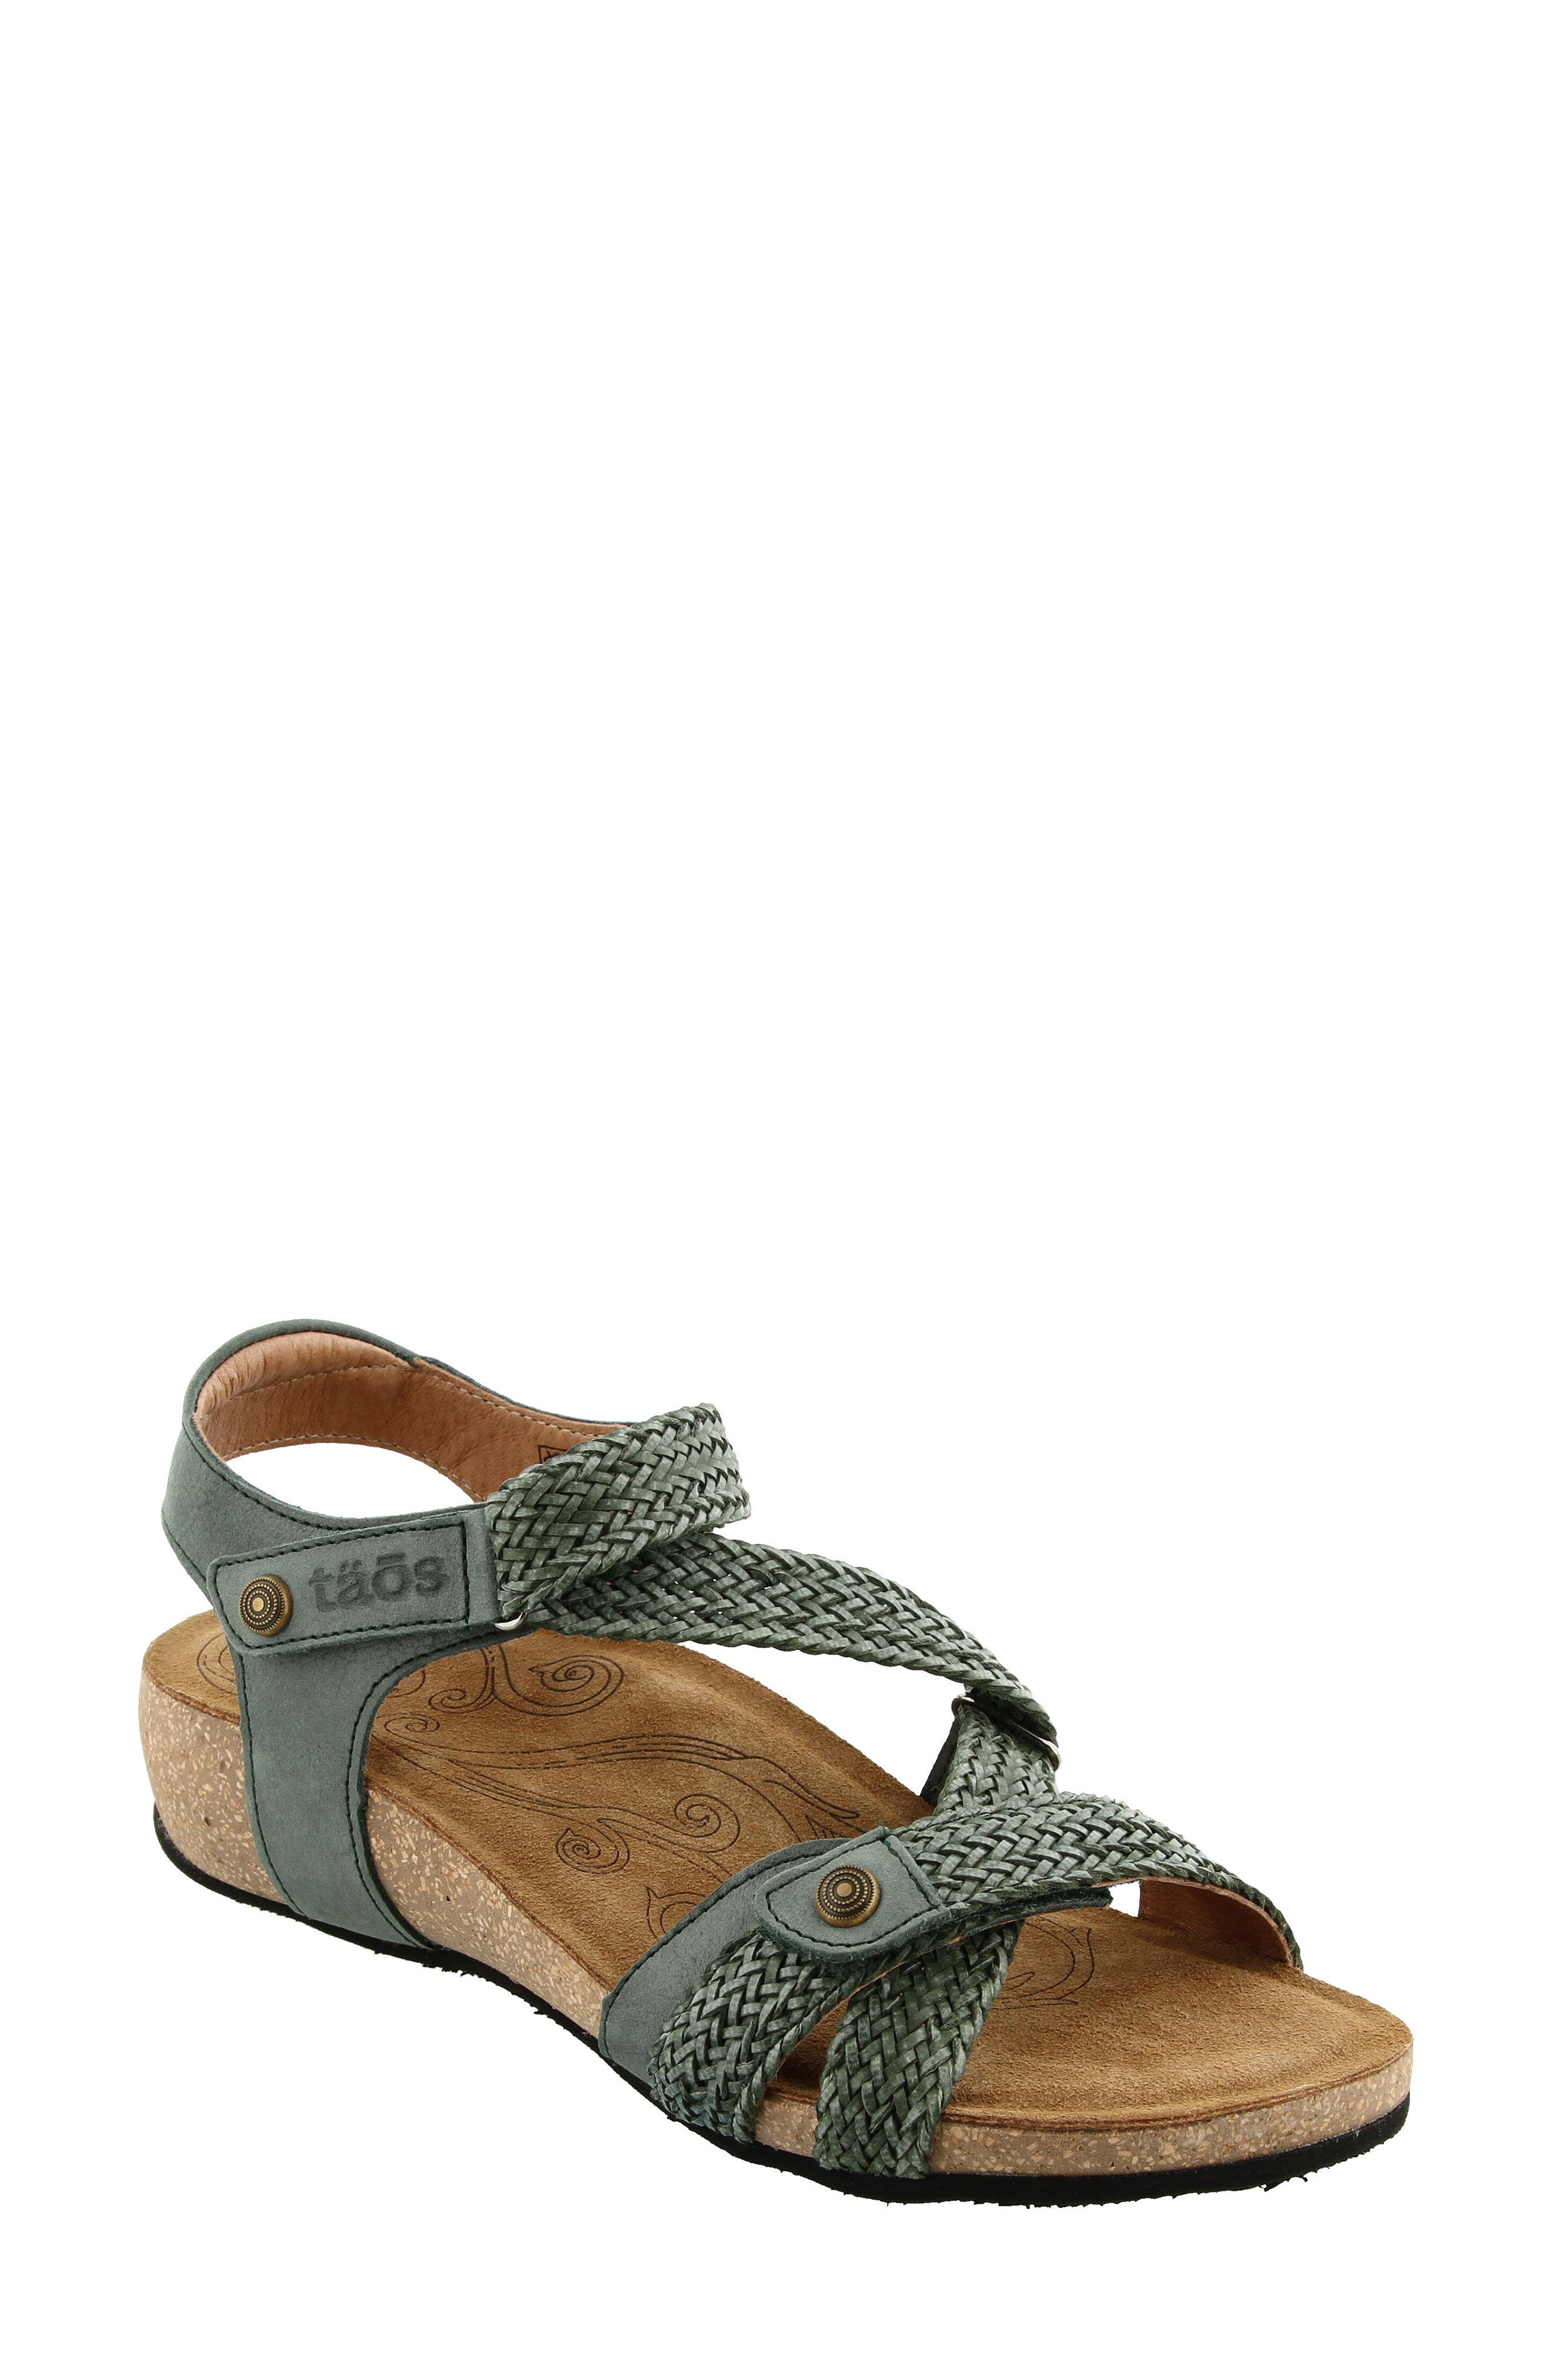 Taos 'Trulie' Wedge Sandal (Women)